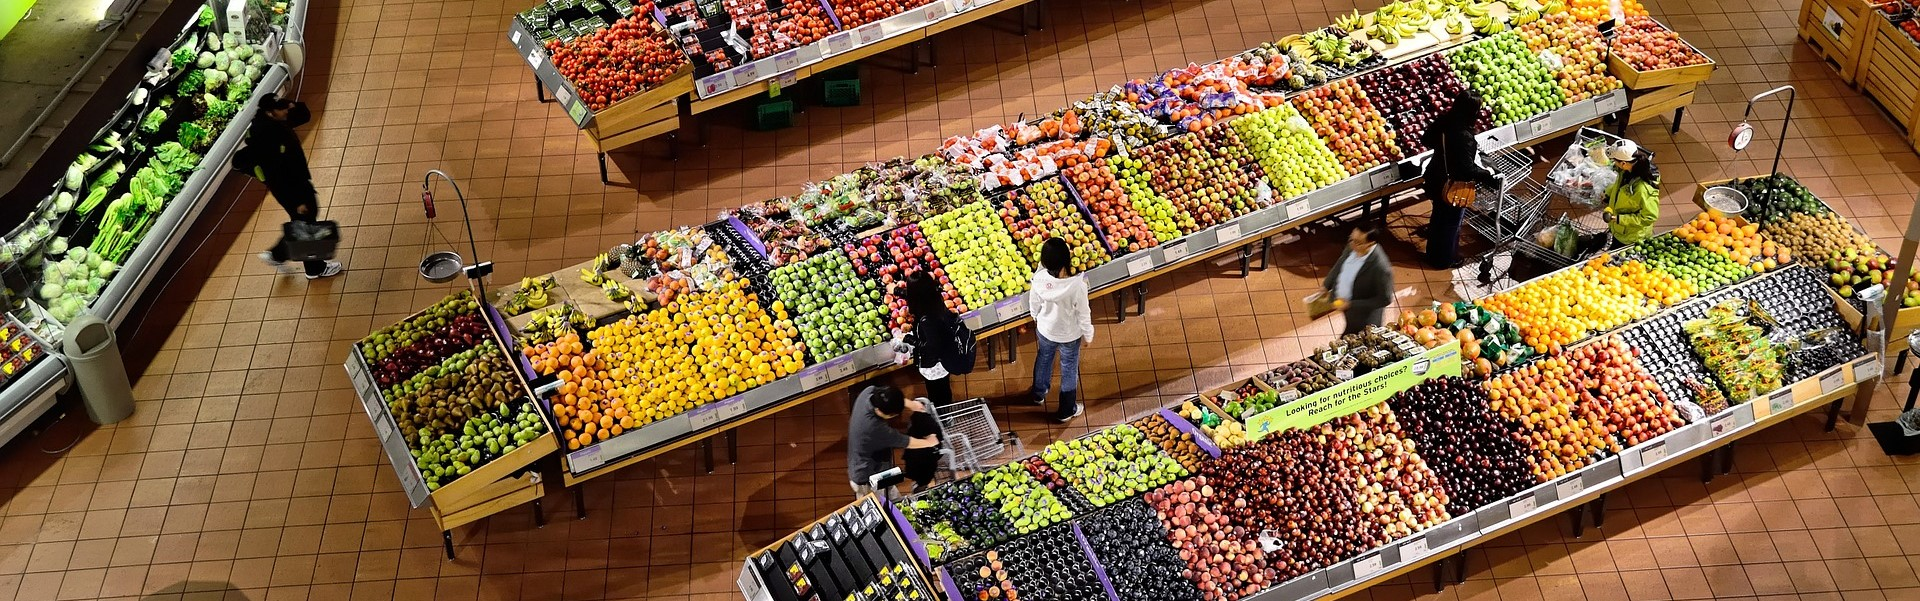 Fruits and Veggies at some Supermarket | Breast Cancer Car Donations